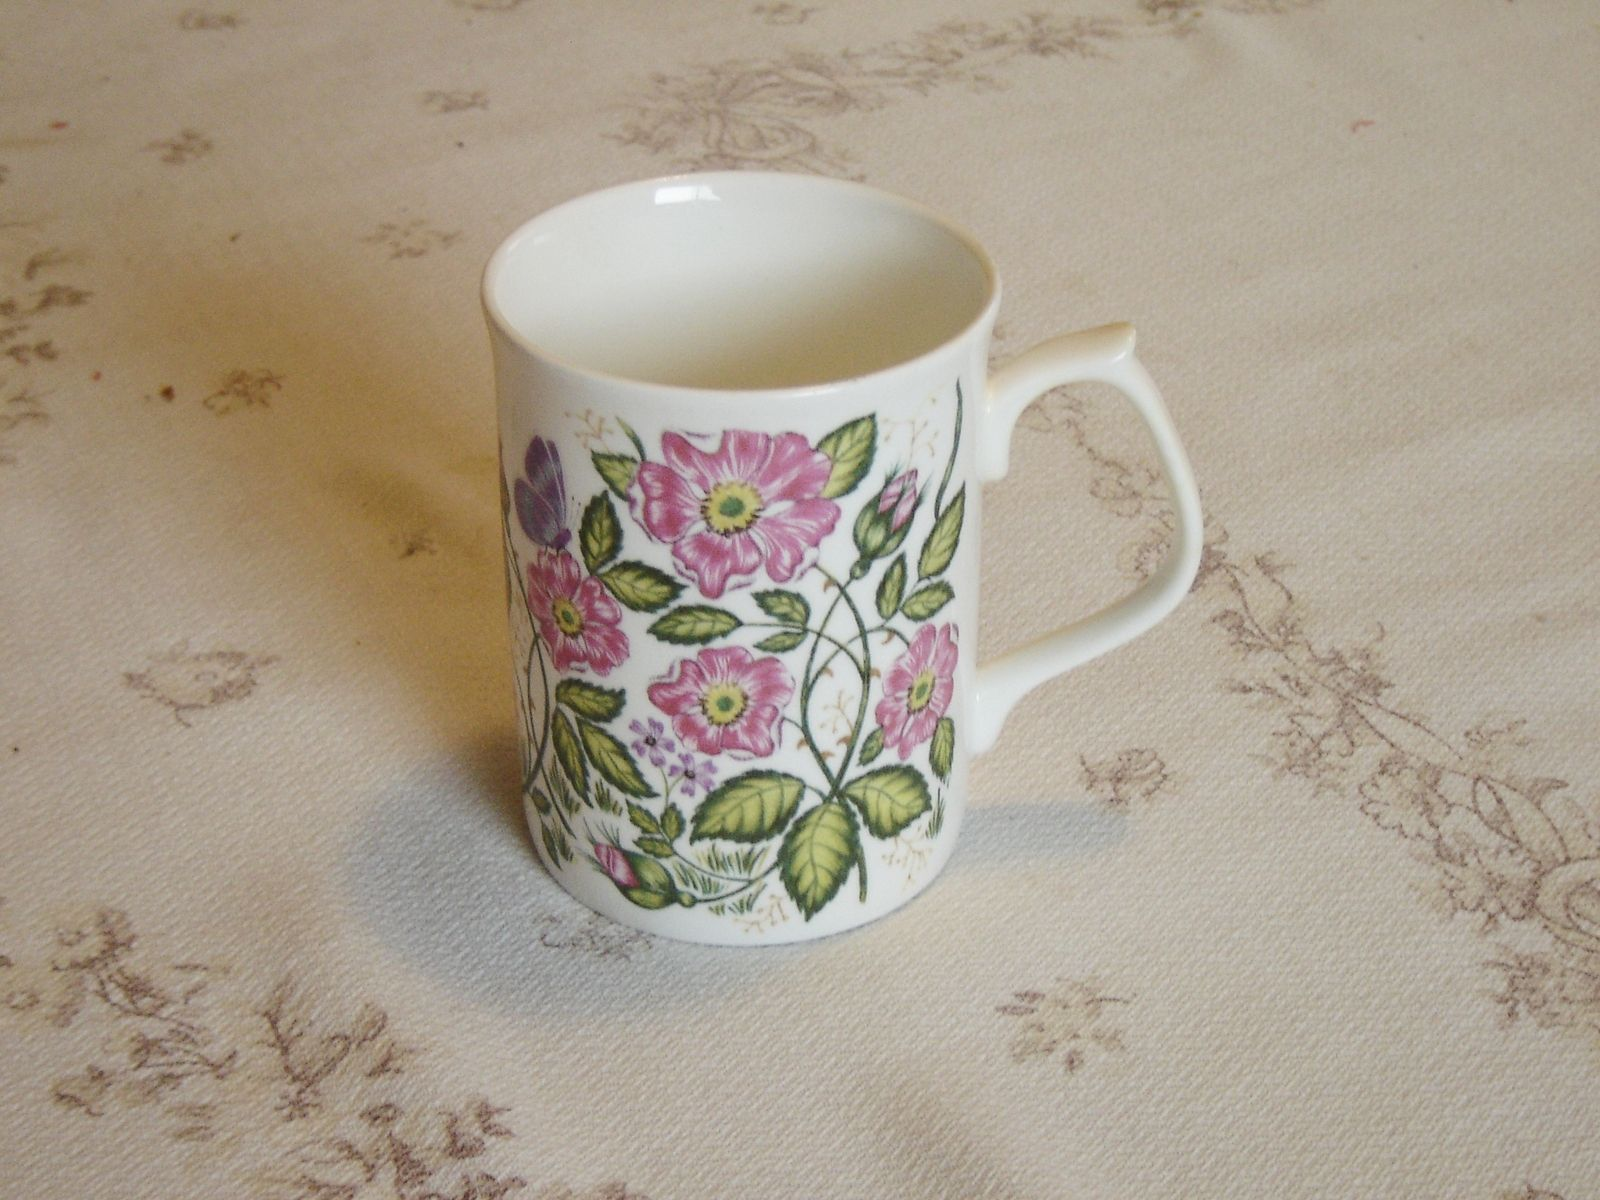 """Mug in a pink and purple floral display   This mug is 3 5/8"""" (9.2 cm) high x 2 7/8"""" (7.3 cm) at the brim   This mug is in near mint condition and doesn't appear to have been used as anything other than a collectible   Made of fine bone china from England by Jason"""